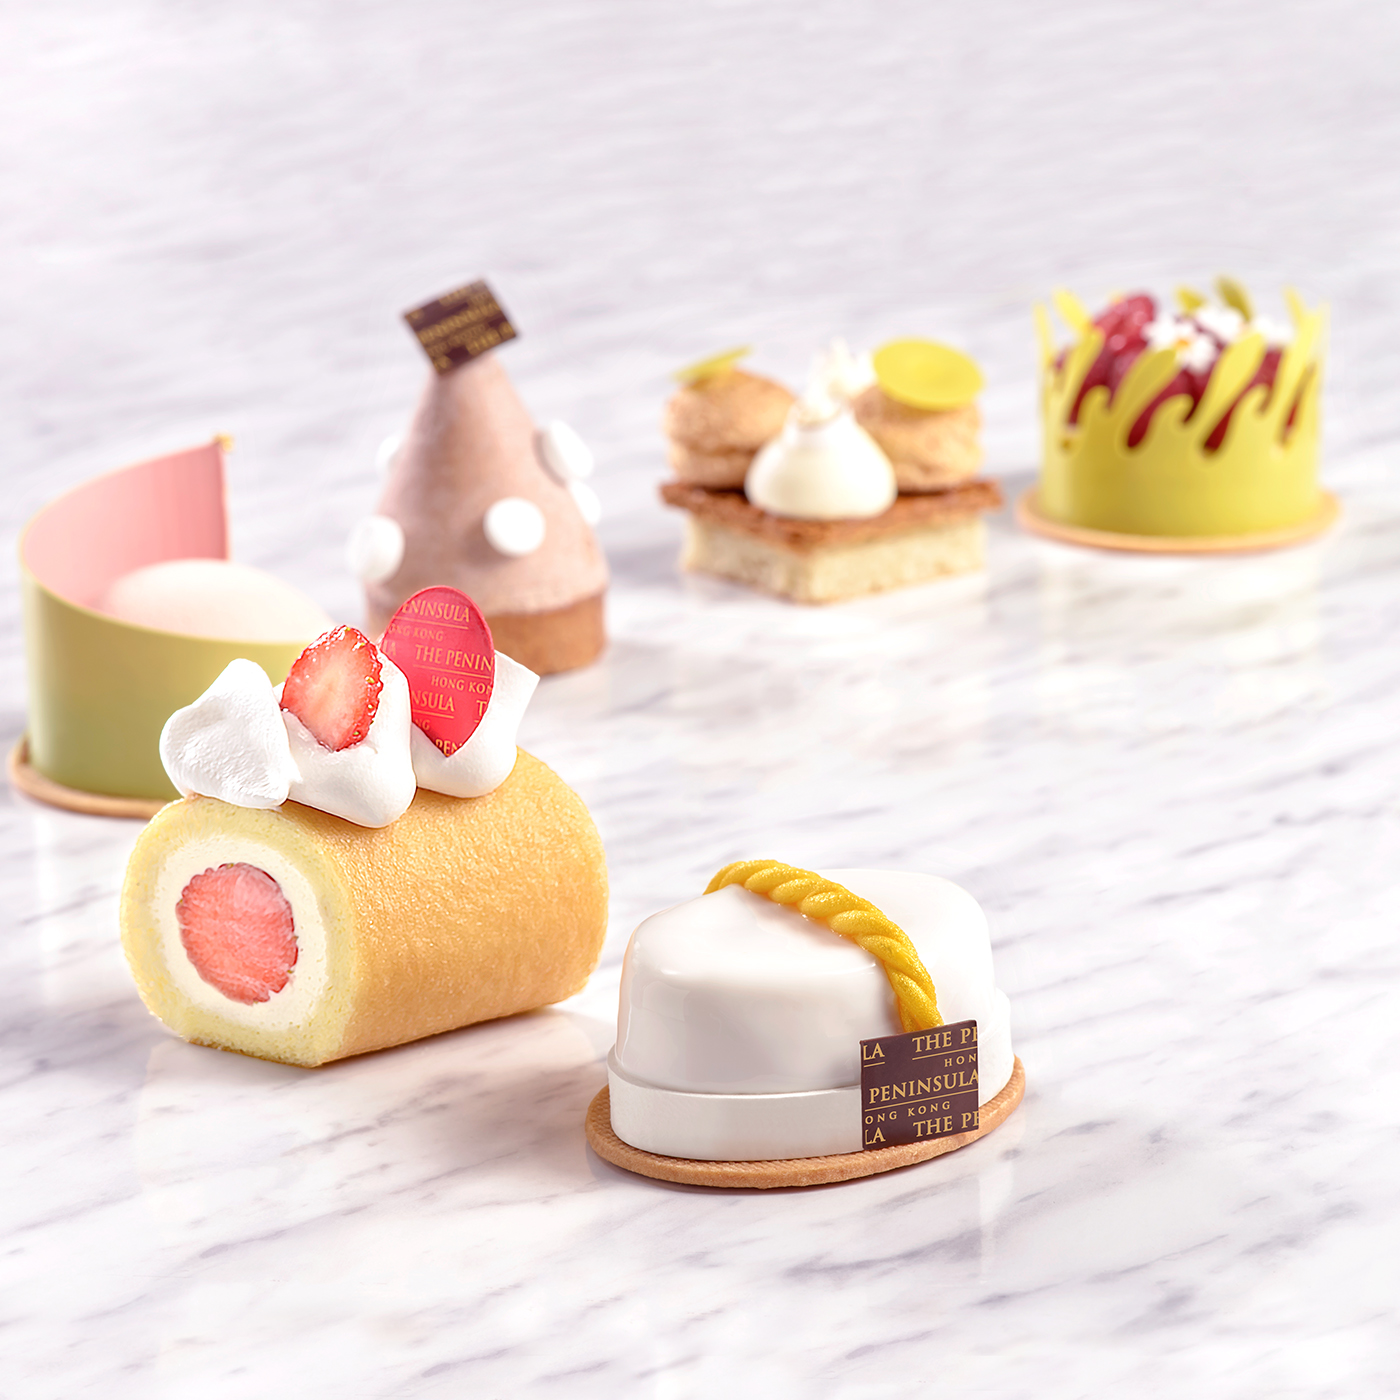 Creative Pastries by Frank Hassnoot